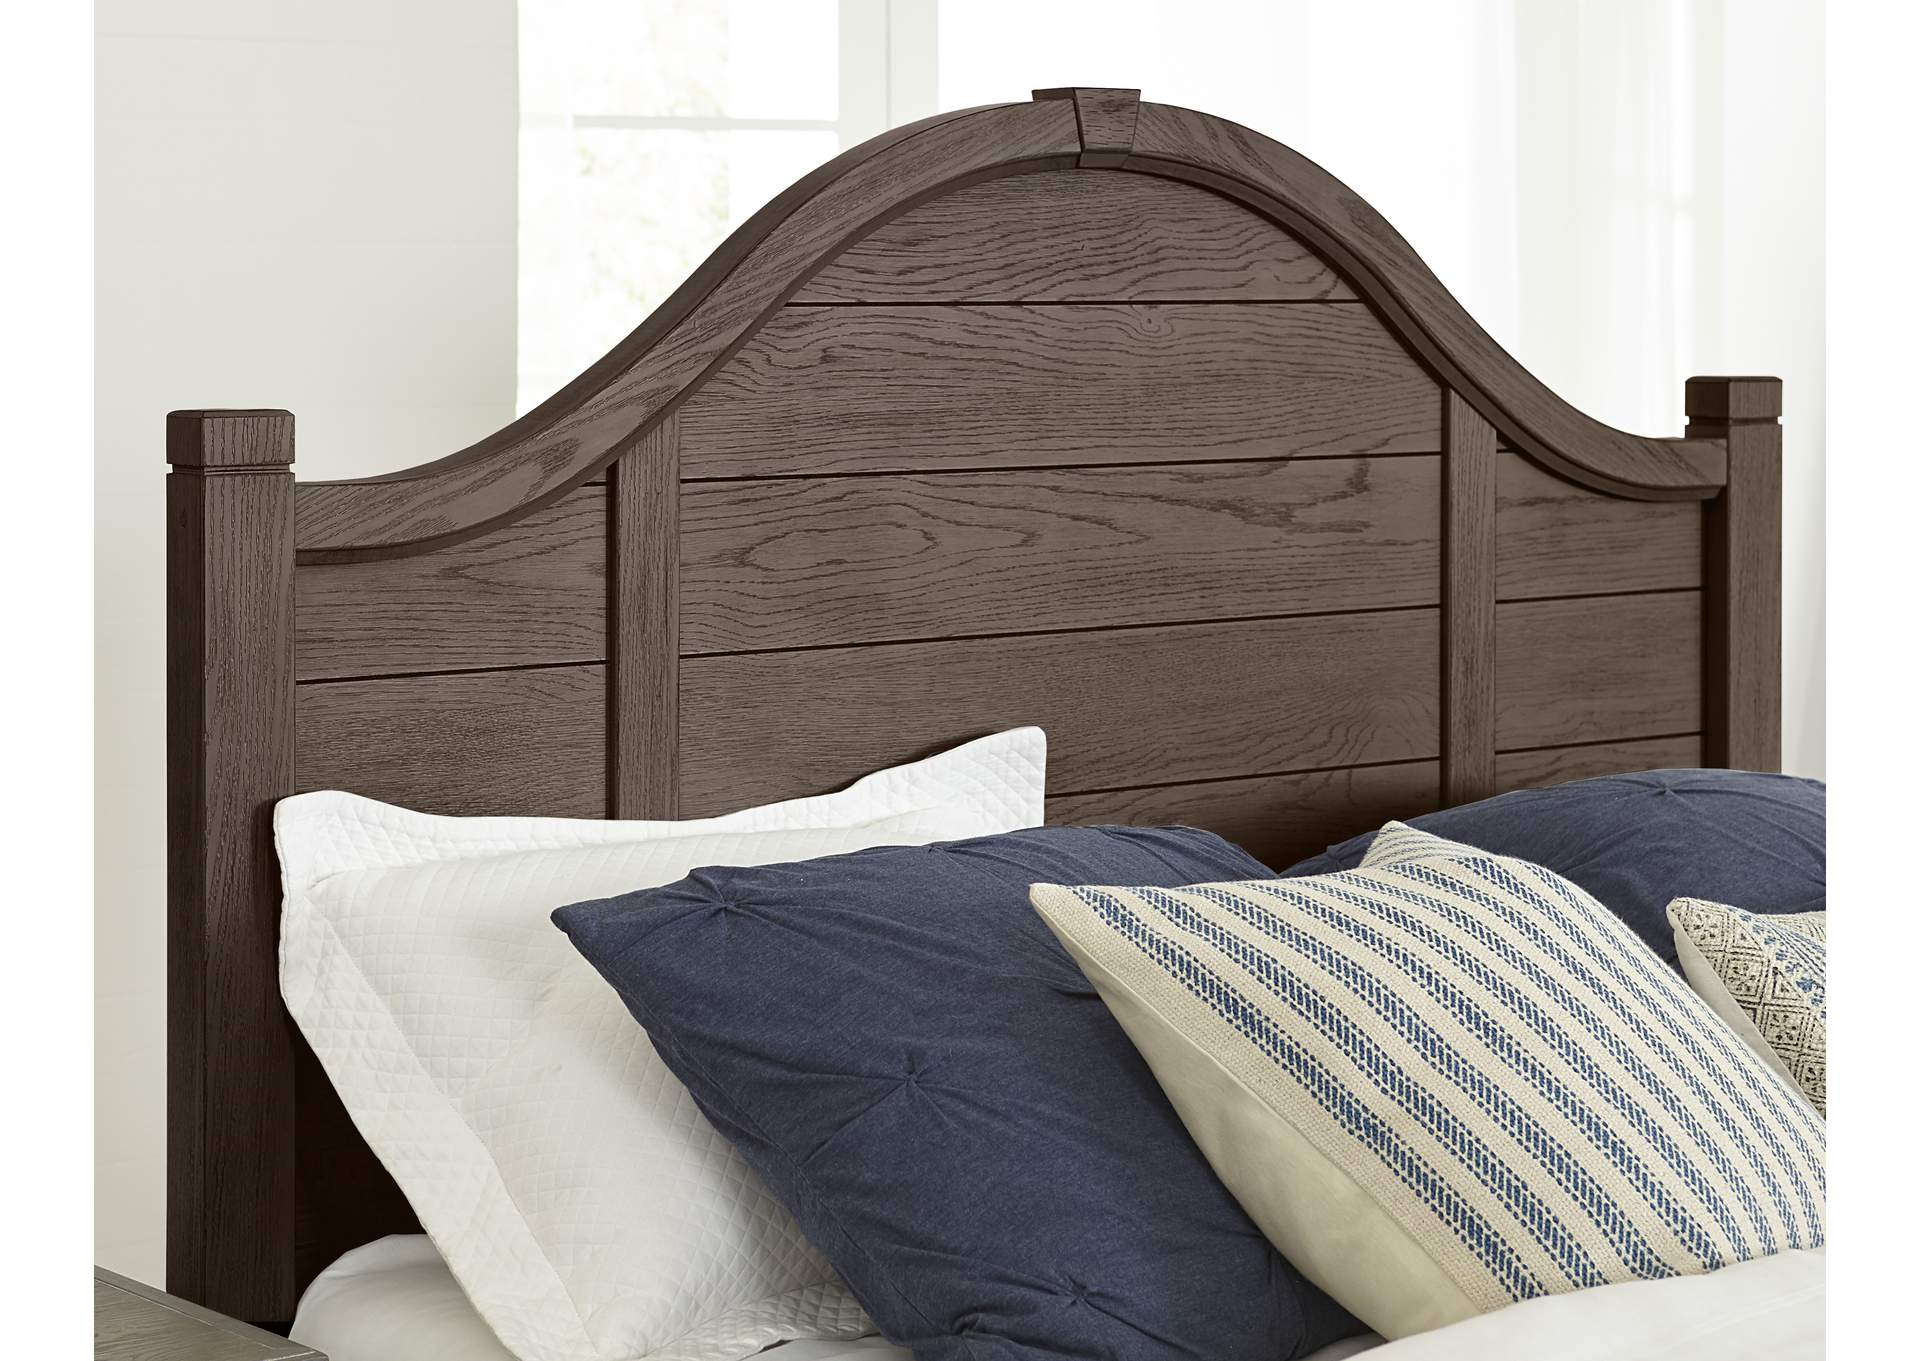 740 - Bungalow Folkstone Full Arch Storage Bed,Vaughan-Bassett